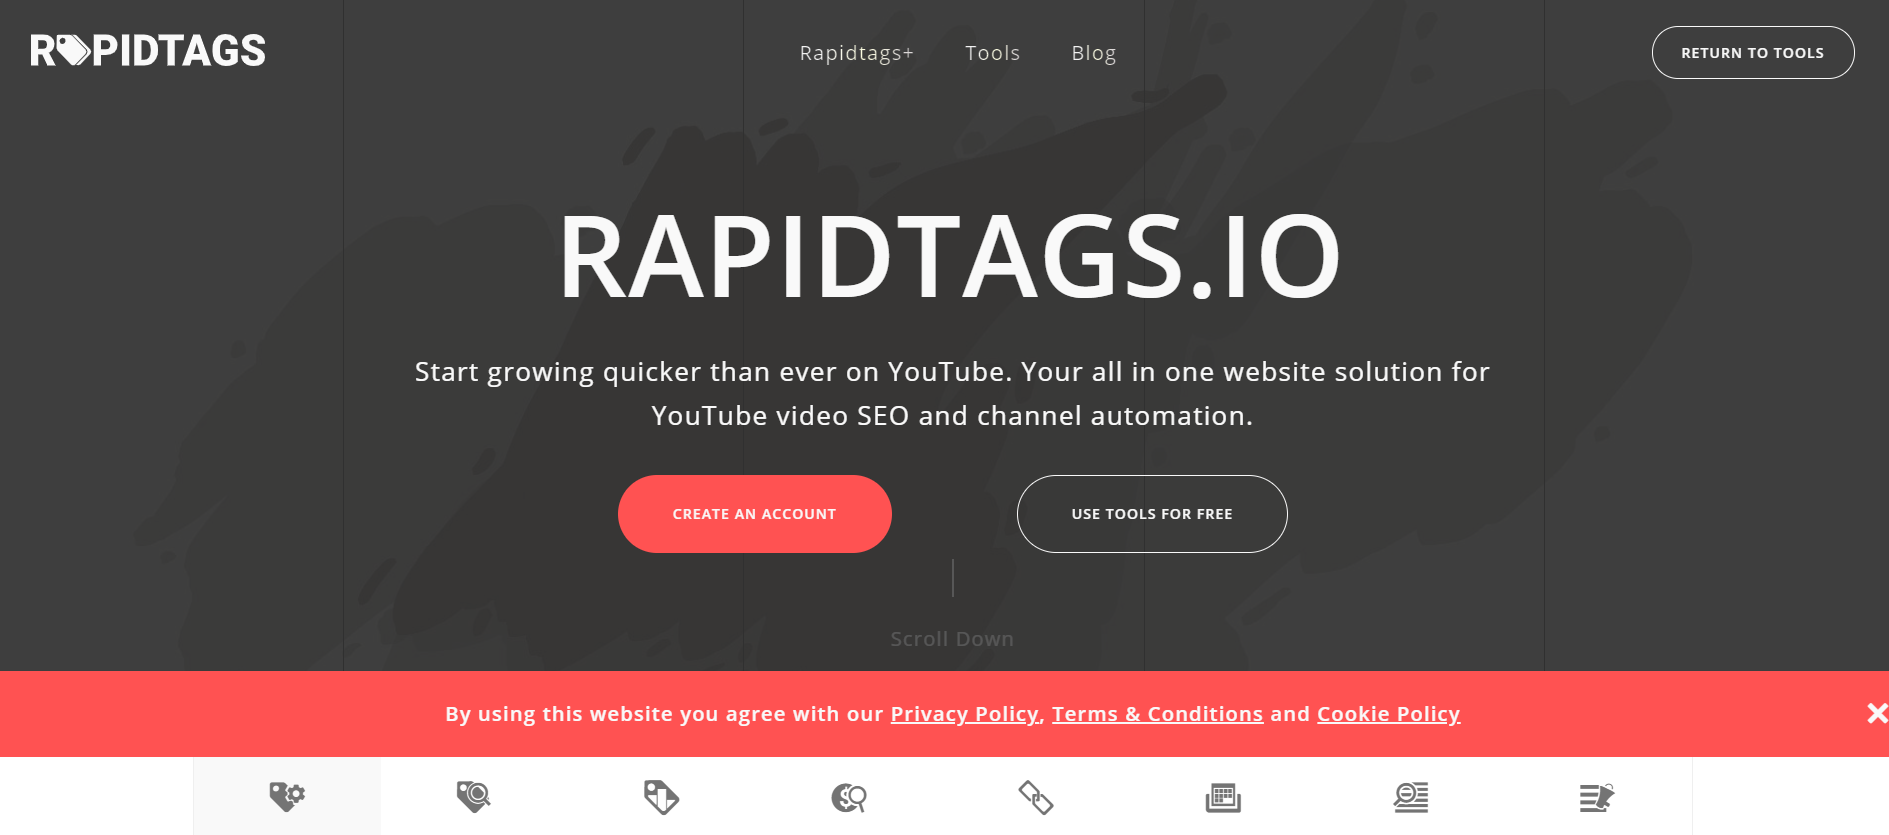 Rapidtags - Grow quicker on YouTube